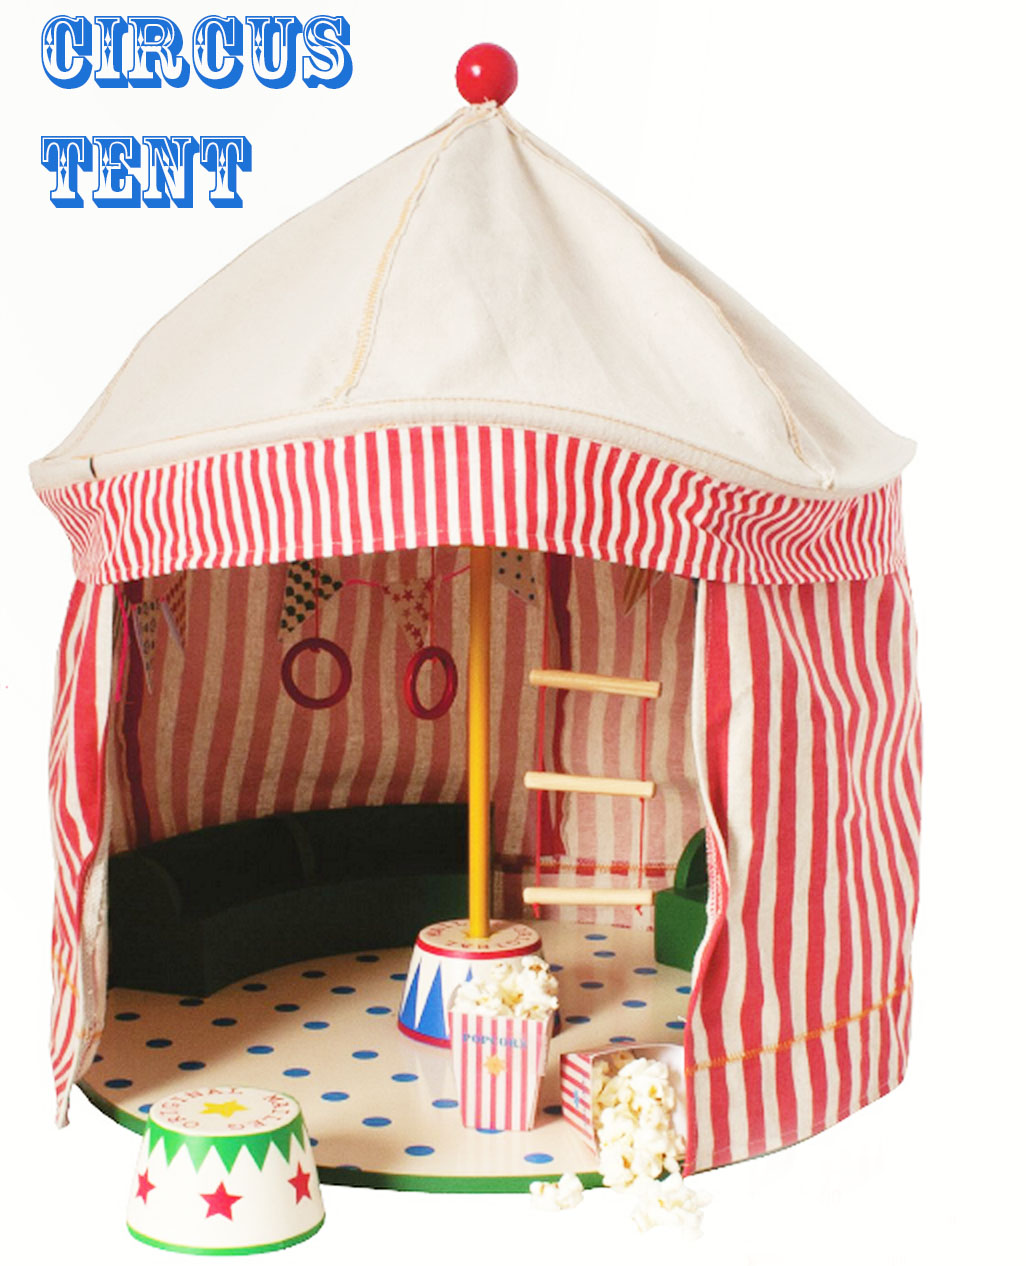 7 Of The Coolest Play Tents  sc 1 st  Kandeeland & Kandeeland: 7 Of The Coolest Play Tents